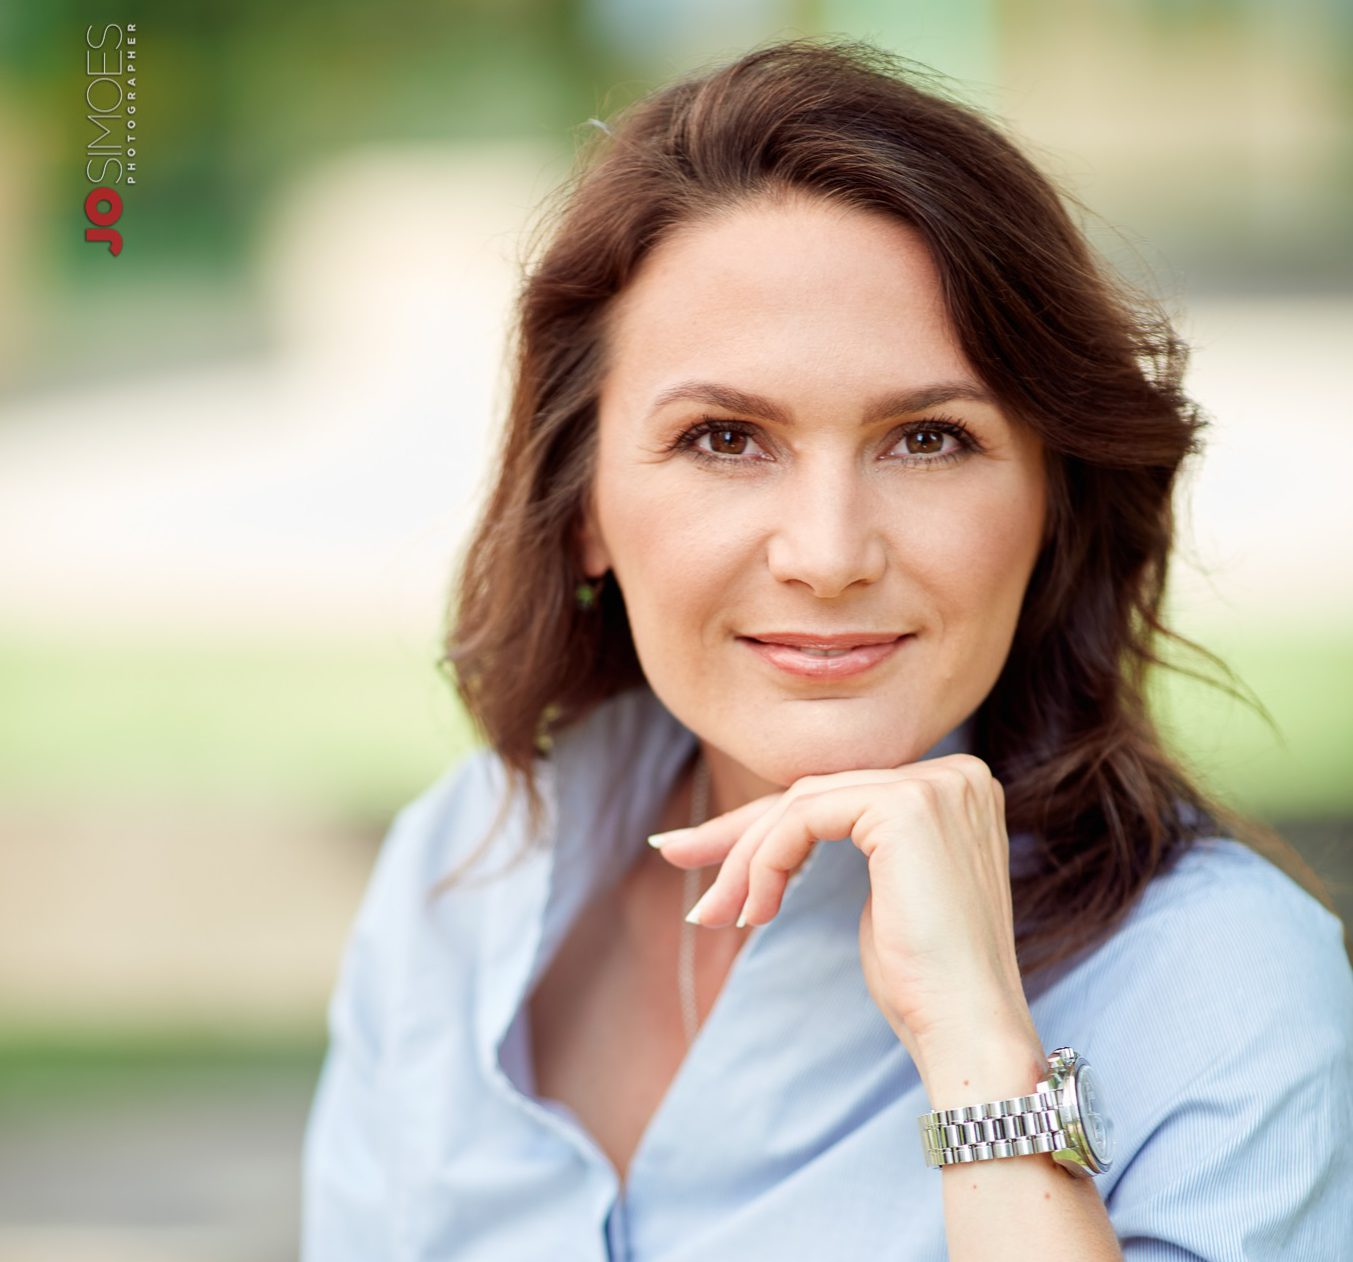 Interview with Prof. Dr. Felicitas Morhart - Founder of the Swiss Center for Luxury Research